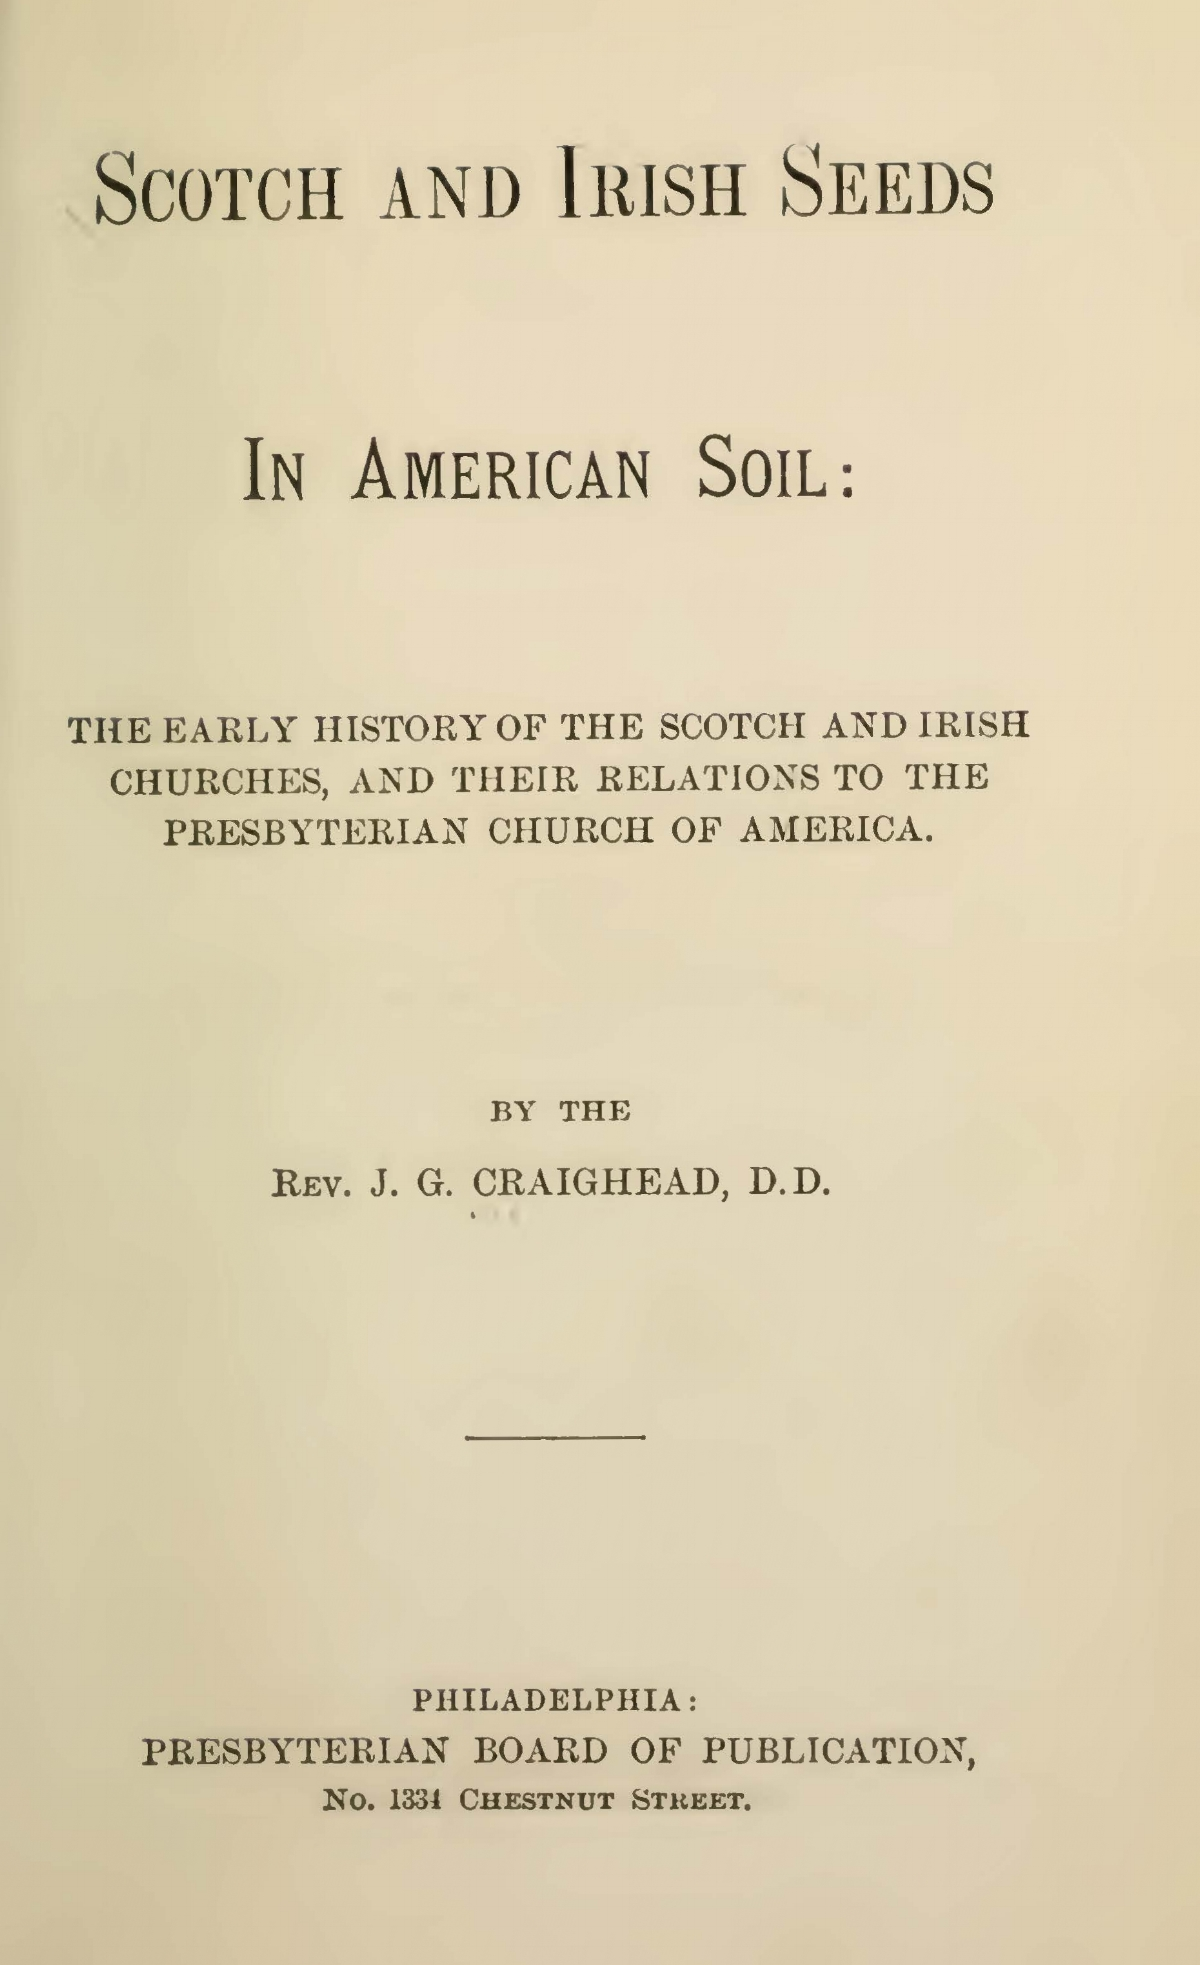 Craighead, James Geddes, Scotch and Irish Seeds in American Soil Title Page.jpg